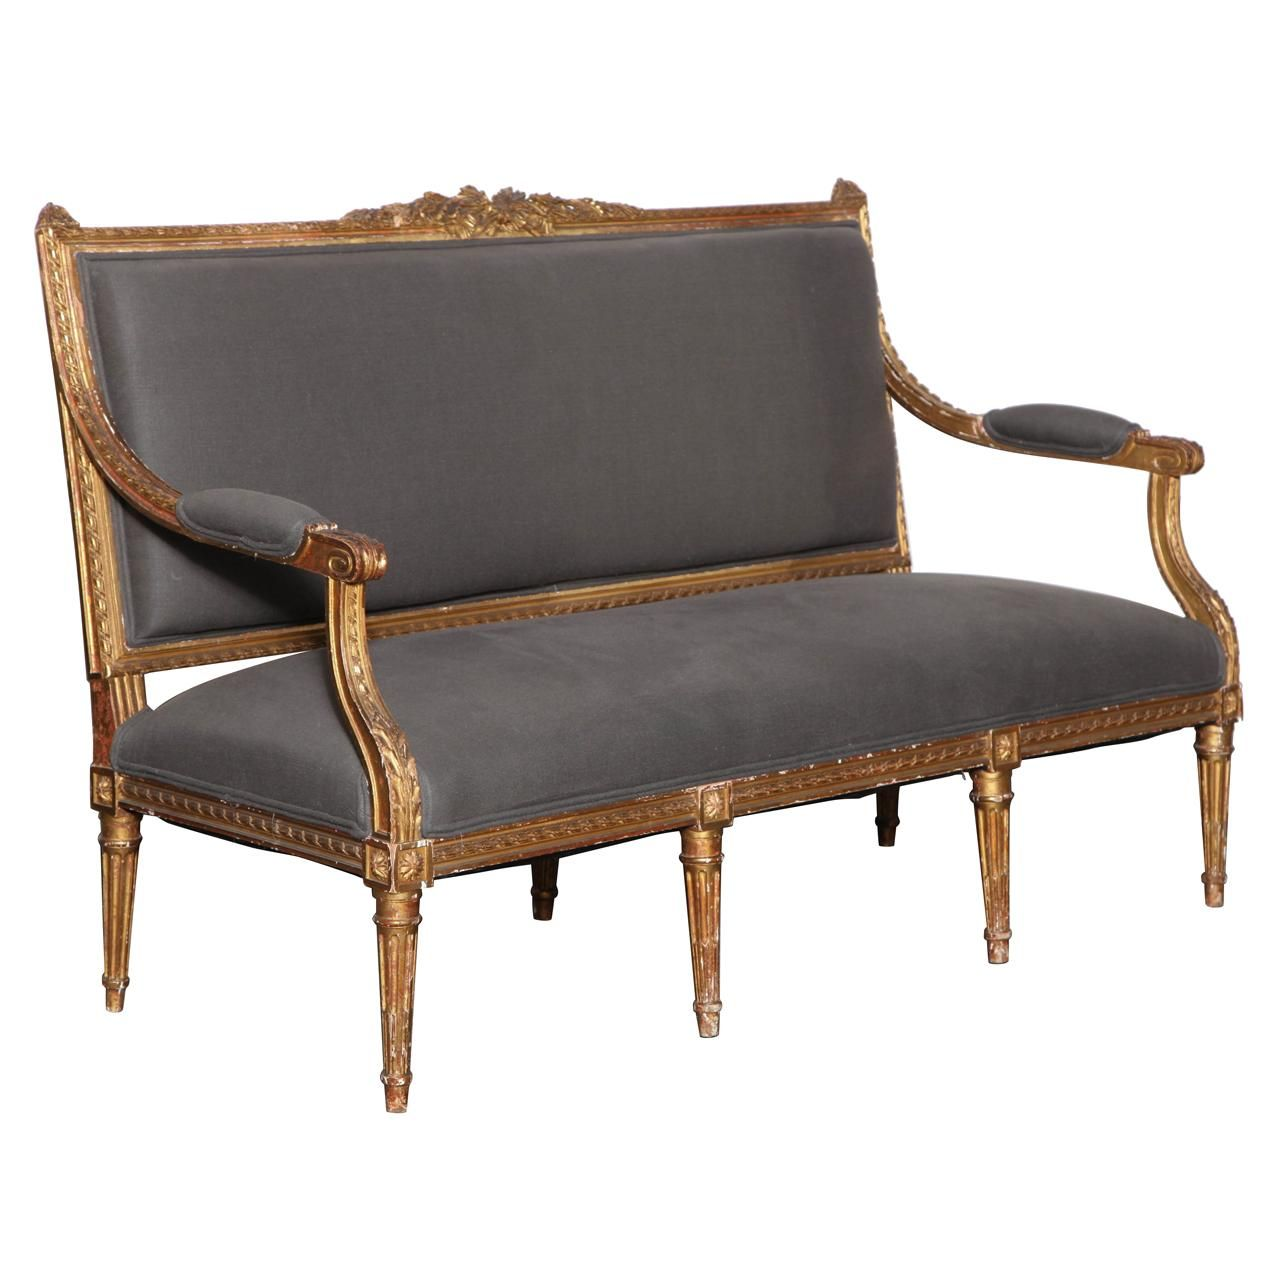 Louis xvi style settee sill n antiguo sillones y for Sillas louis xvi